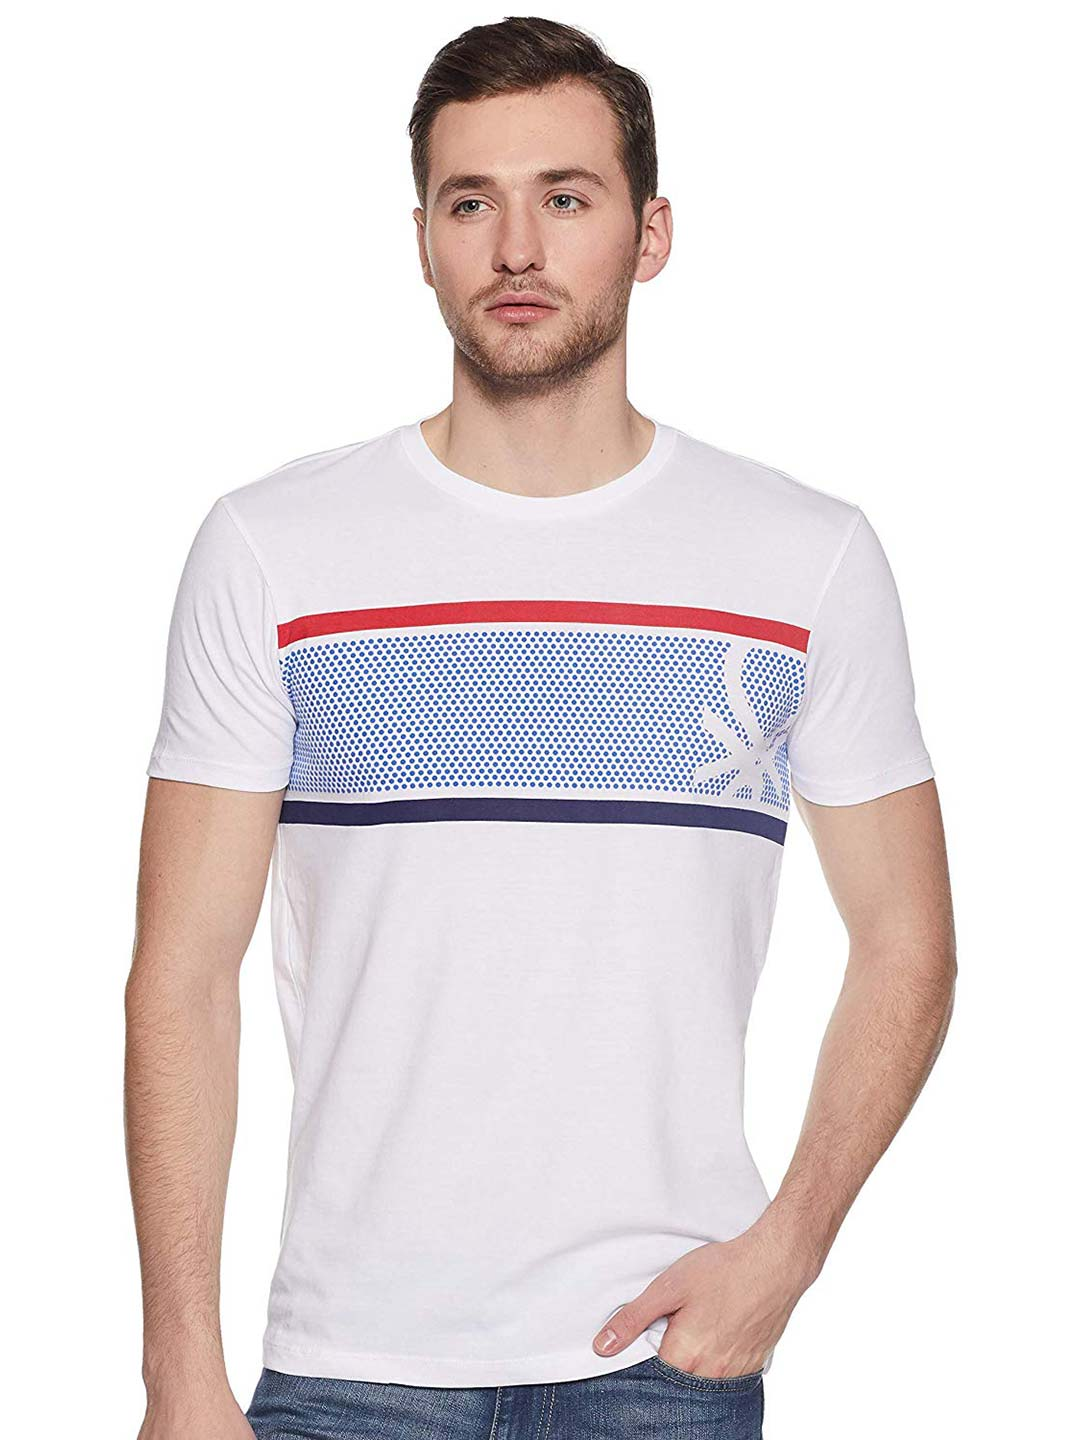 ac0f1e75d2 United Colors of Benetton printed white hue t-shirt - G3-MTS8173 ...